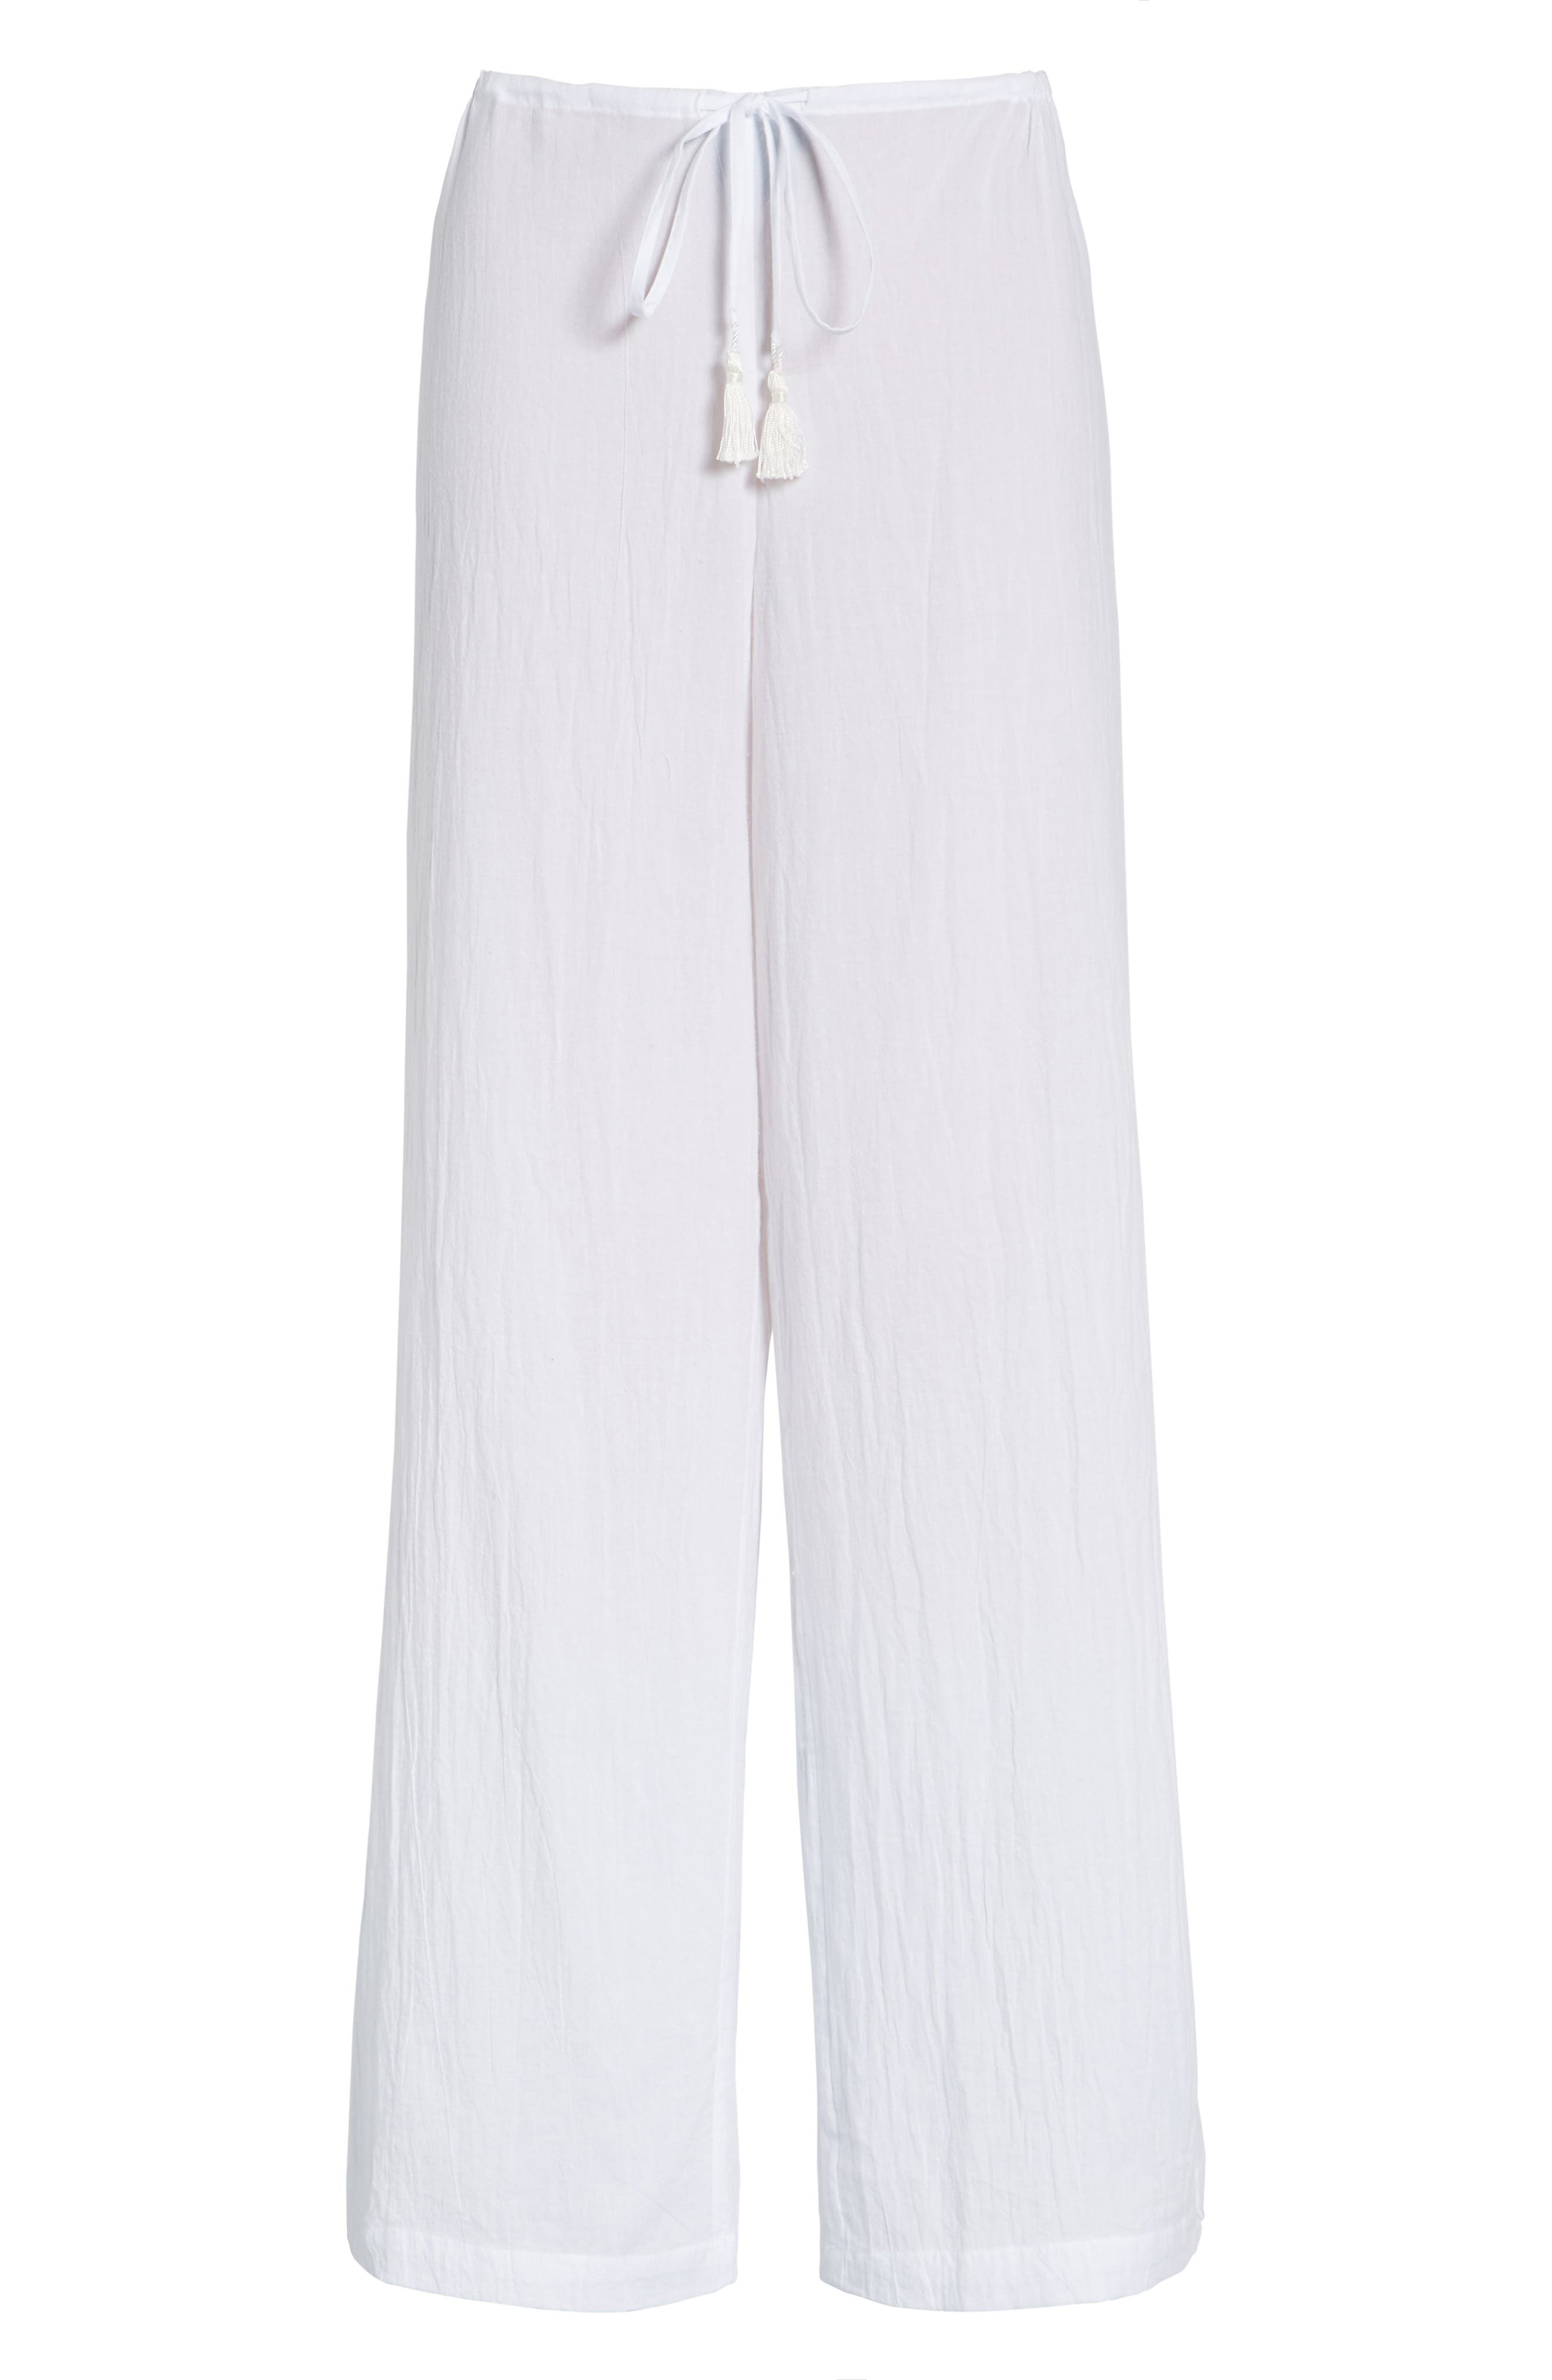 Cover-Up Pants,                             Alternate thumbnail 2, color,                             WHITE